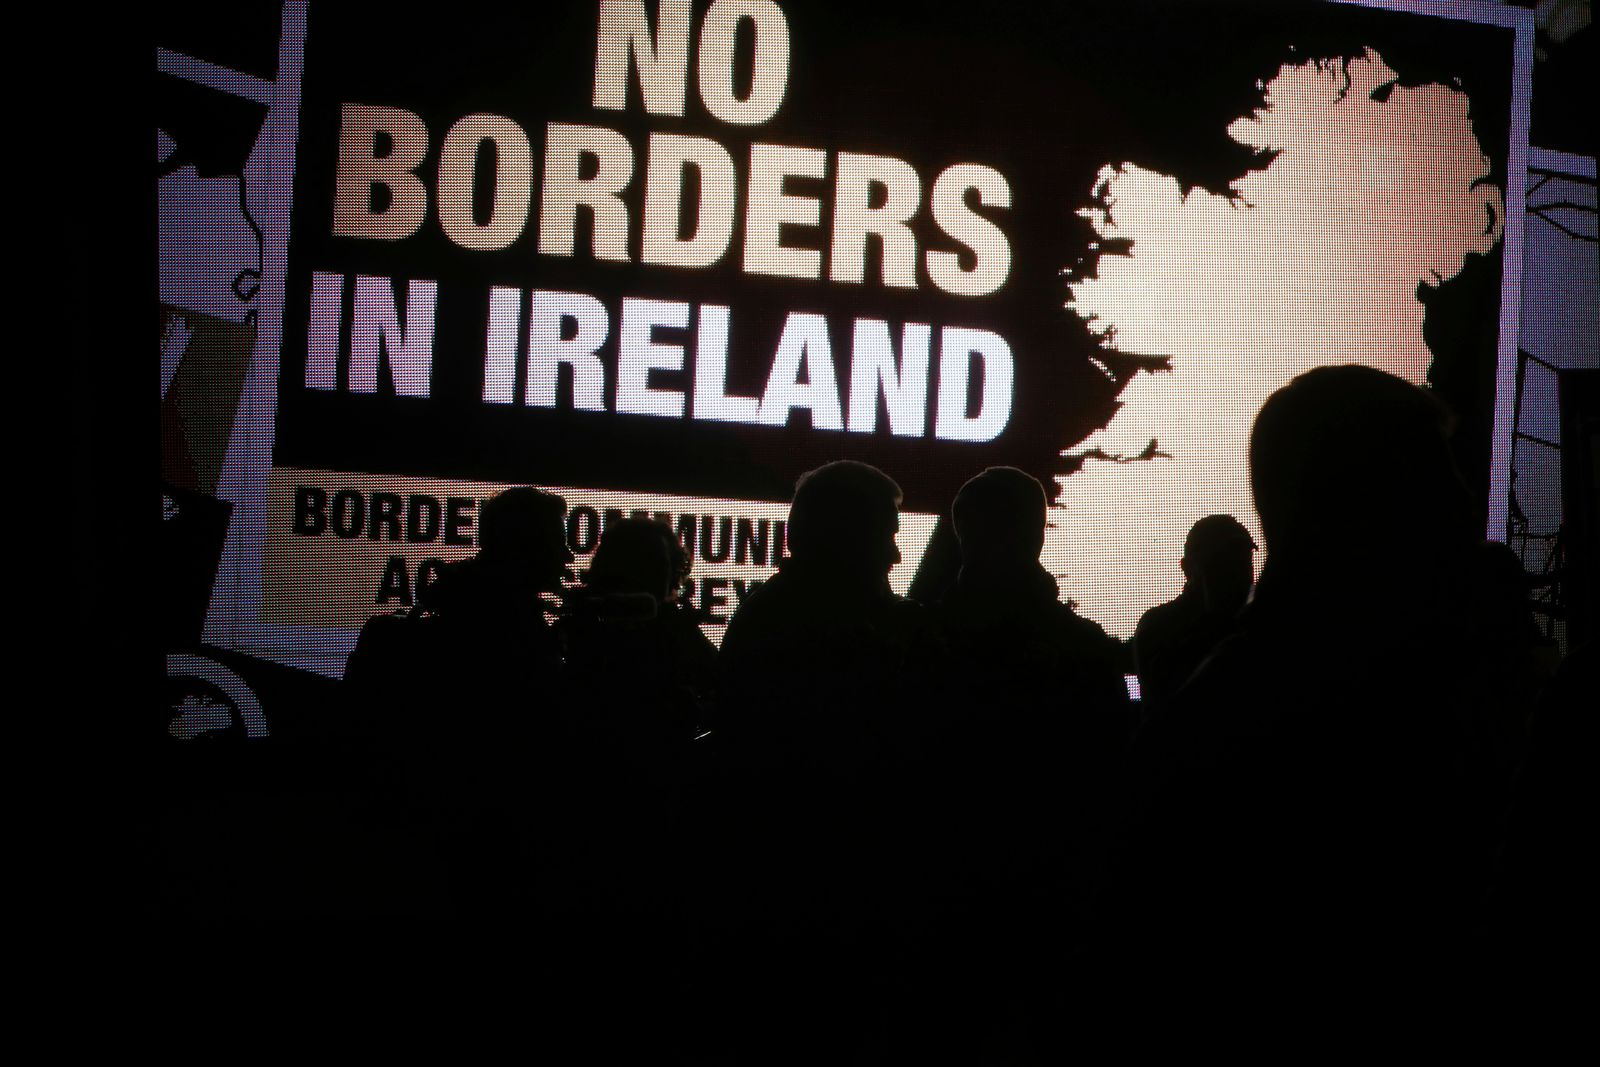 Protesters from the Border Communities Against Brexit group hold a demonstration on the Irish border on the Republic of Ireland side close to the town of Jonesborough, Ireland, Wednesday, Oct. 16 , 2019. The Border Communities Against Brexit group organised various protes(AP Photo/Peter Morrison)